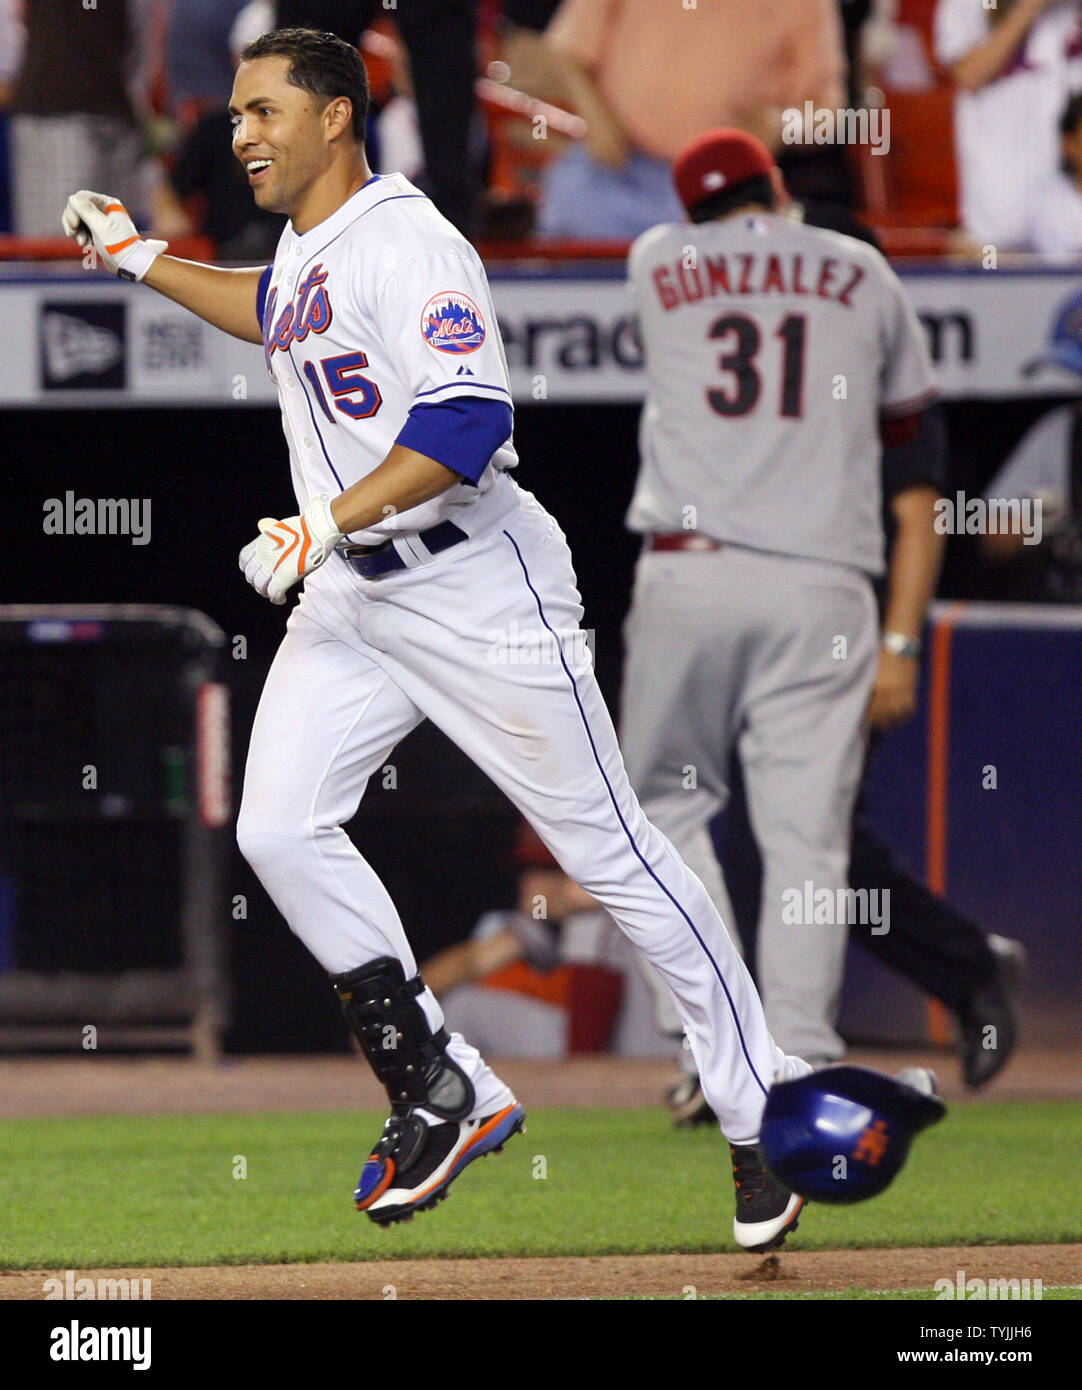 New York Mets Carlos Beltran Reacts While Arizona